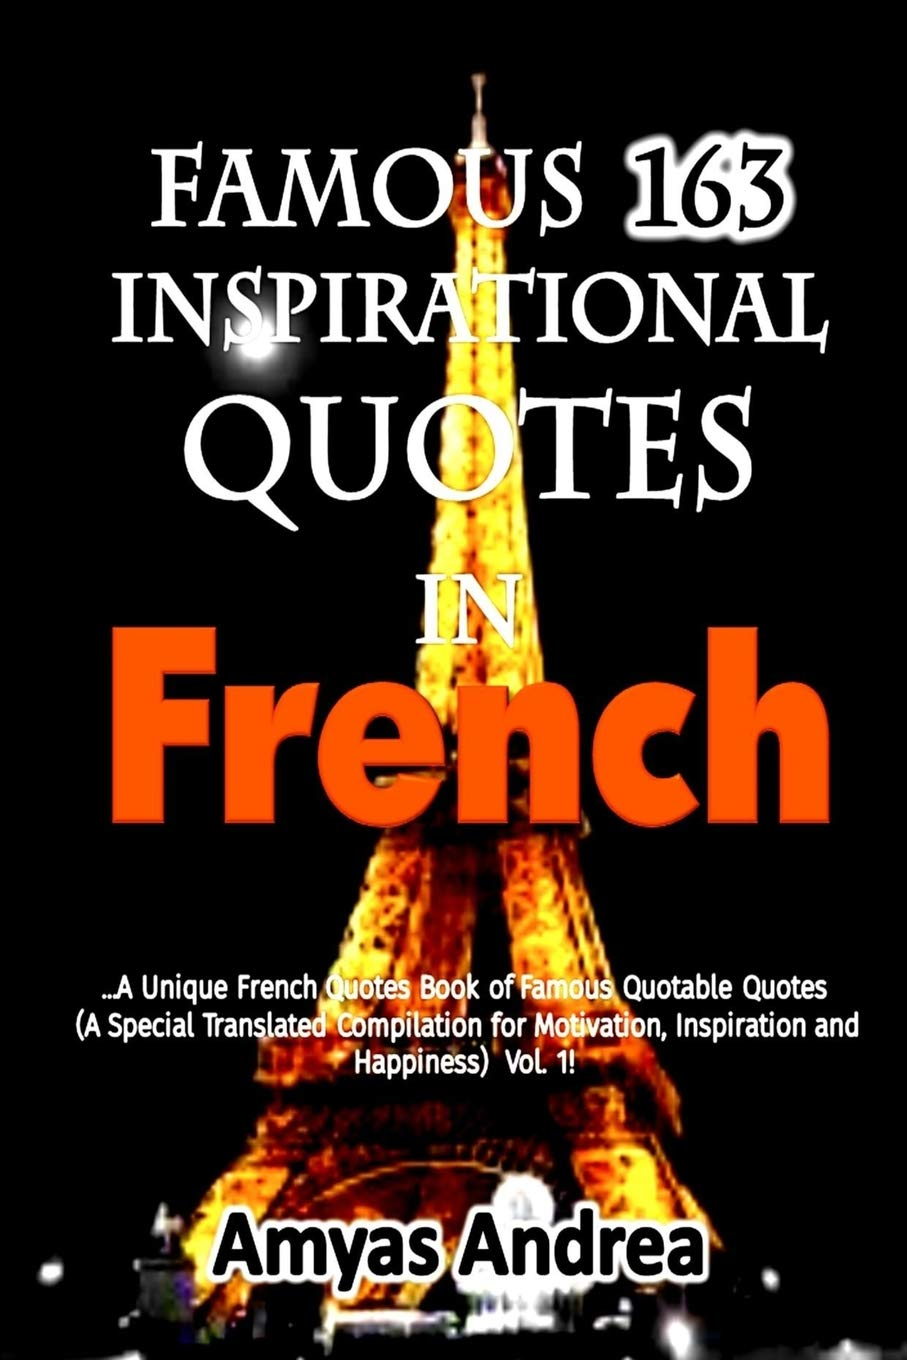 Image of: Salvador Dali Famous 162 Inspirational Quotes In French Unique French Quotes Book Of Famous Quotable Quotes a Special Translated Compilation For Motivation Good Housekeeping Famous 162 Inspirational Quotes In French Unique French Quotes